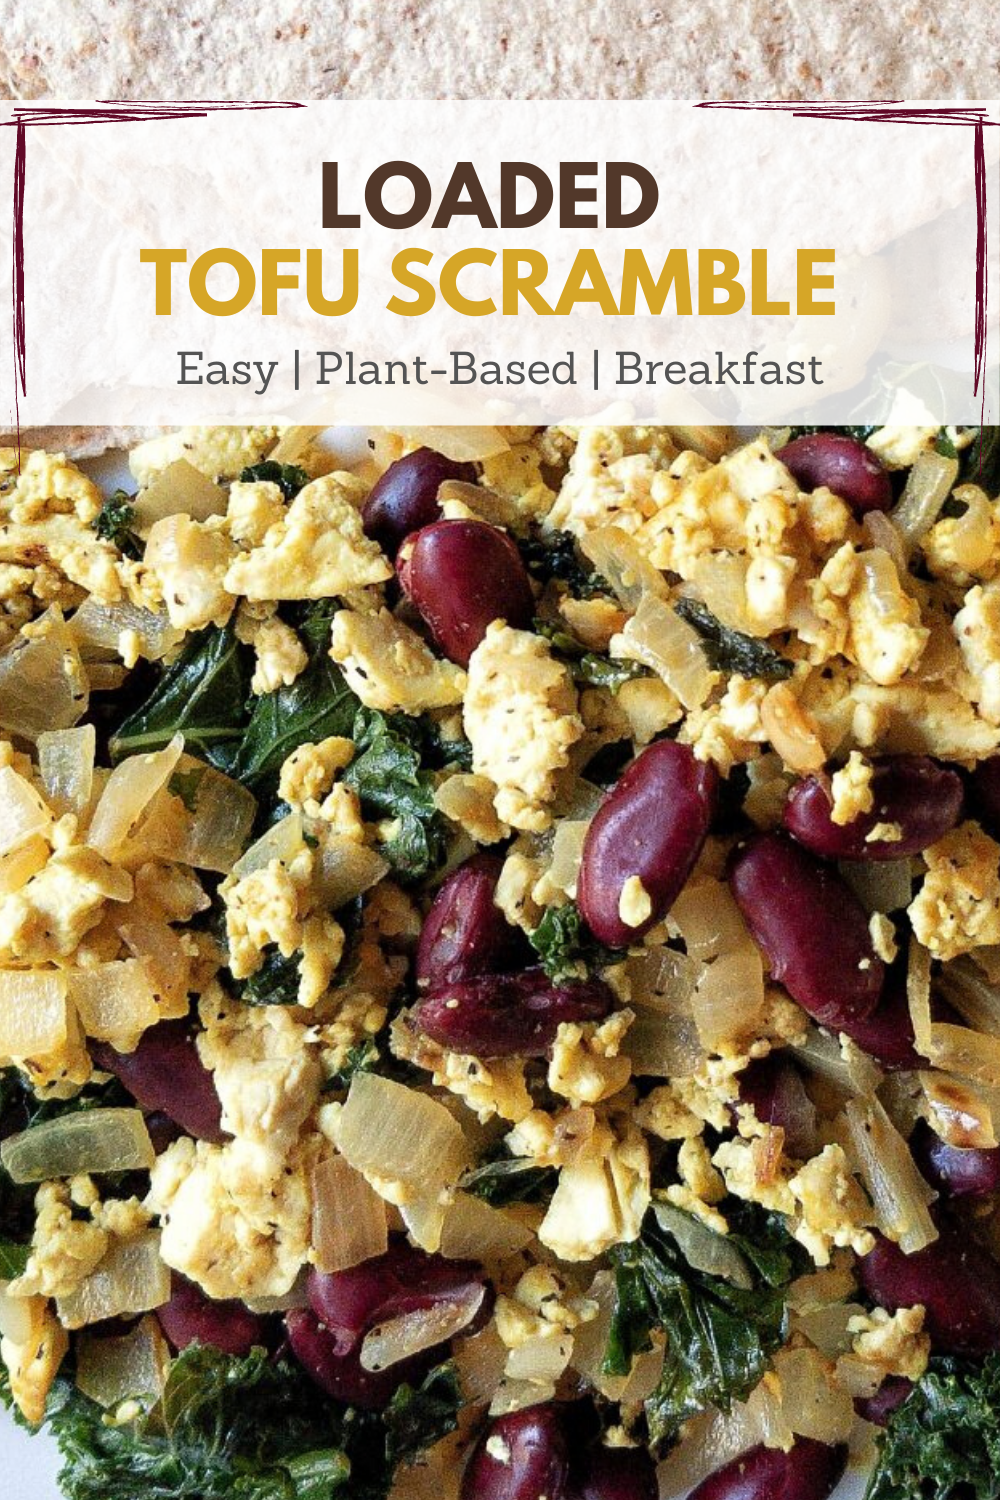 Pinnable image of loaded tofu scramble with beans, onion, and greens.